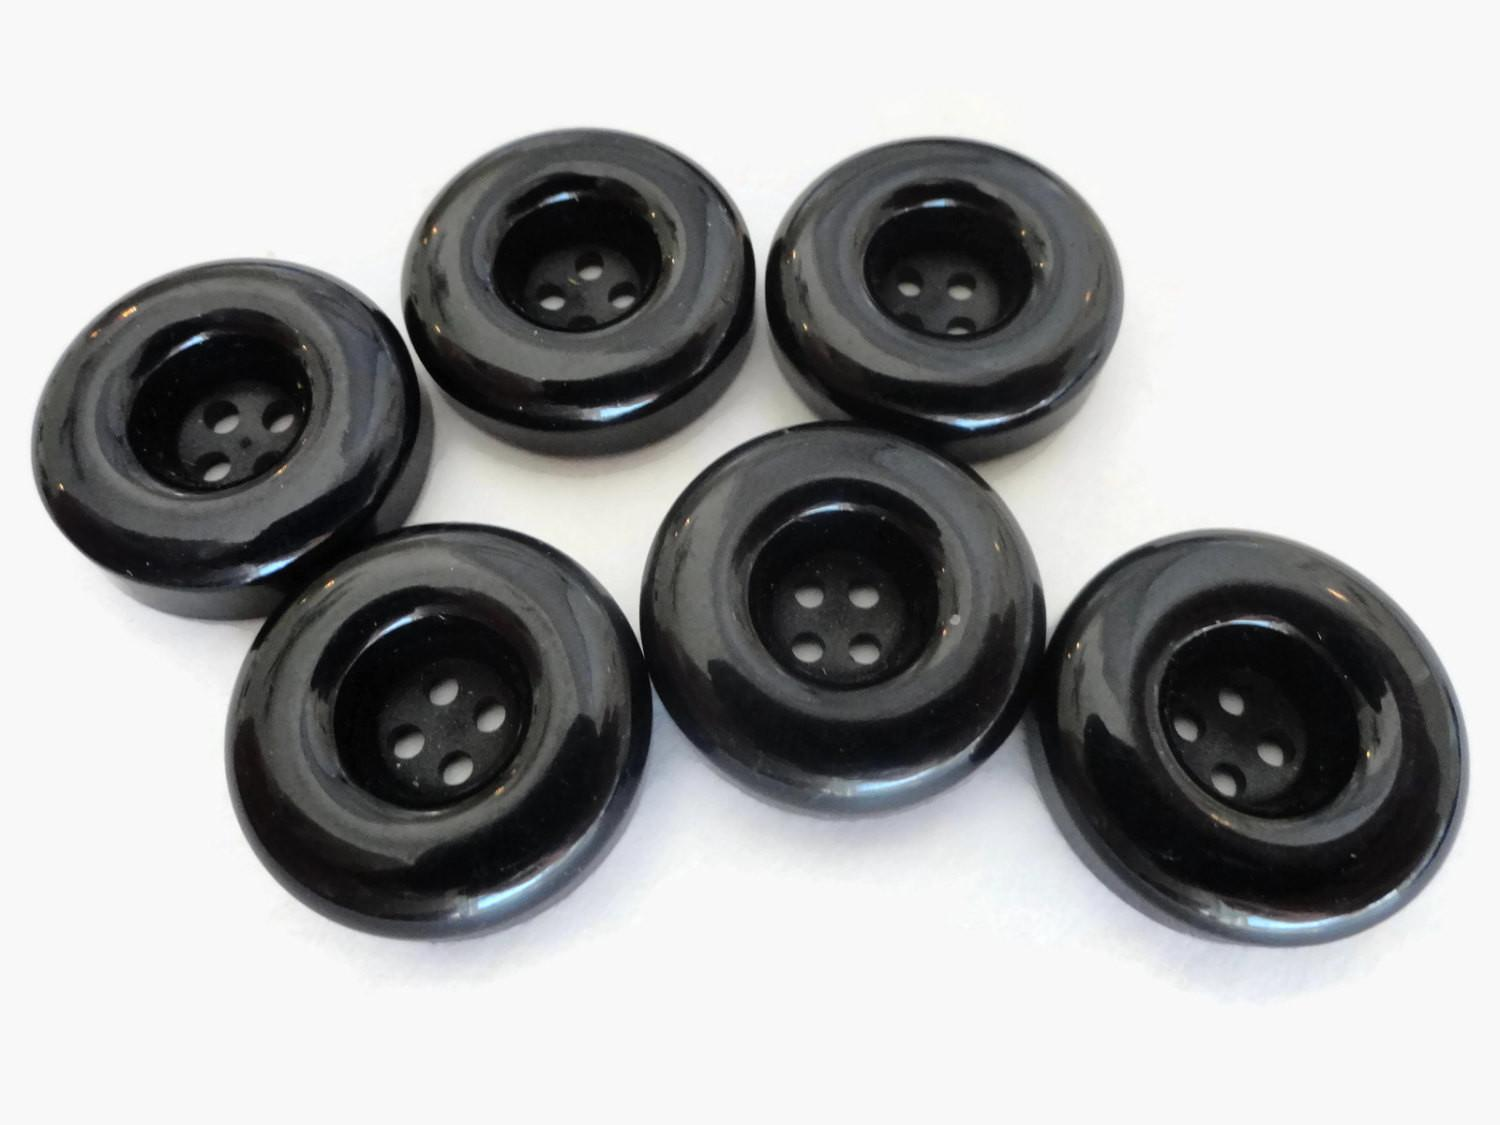 French Licorice Vintage Buttons Mid Century Plastic